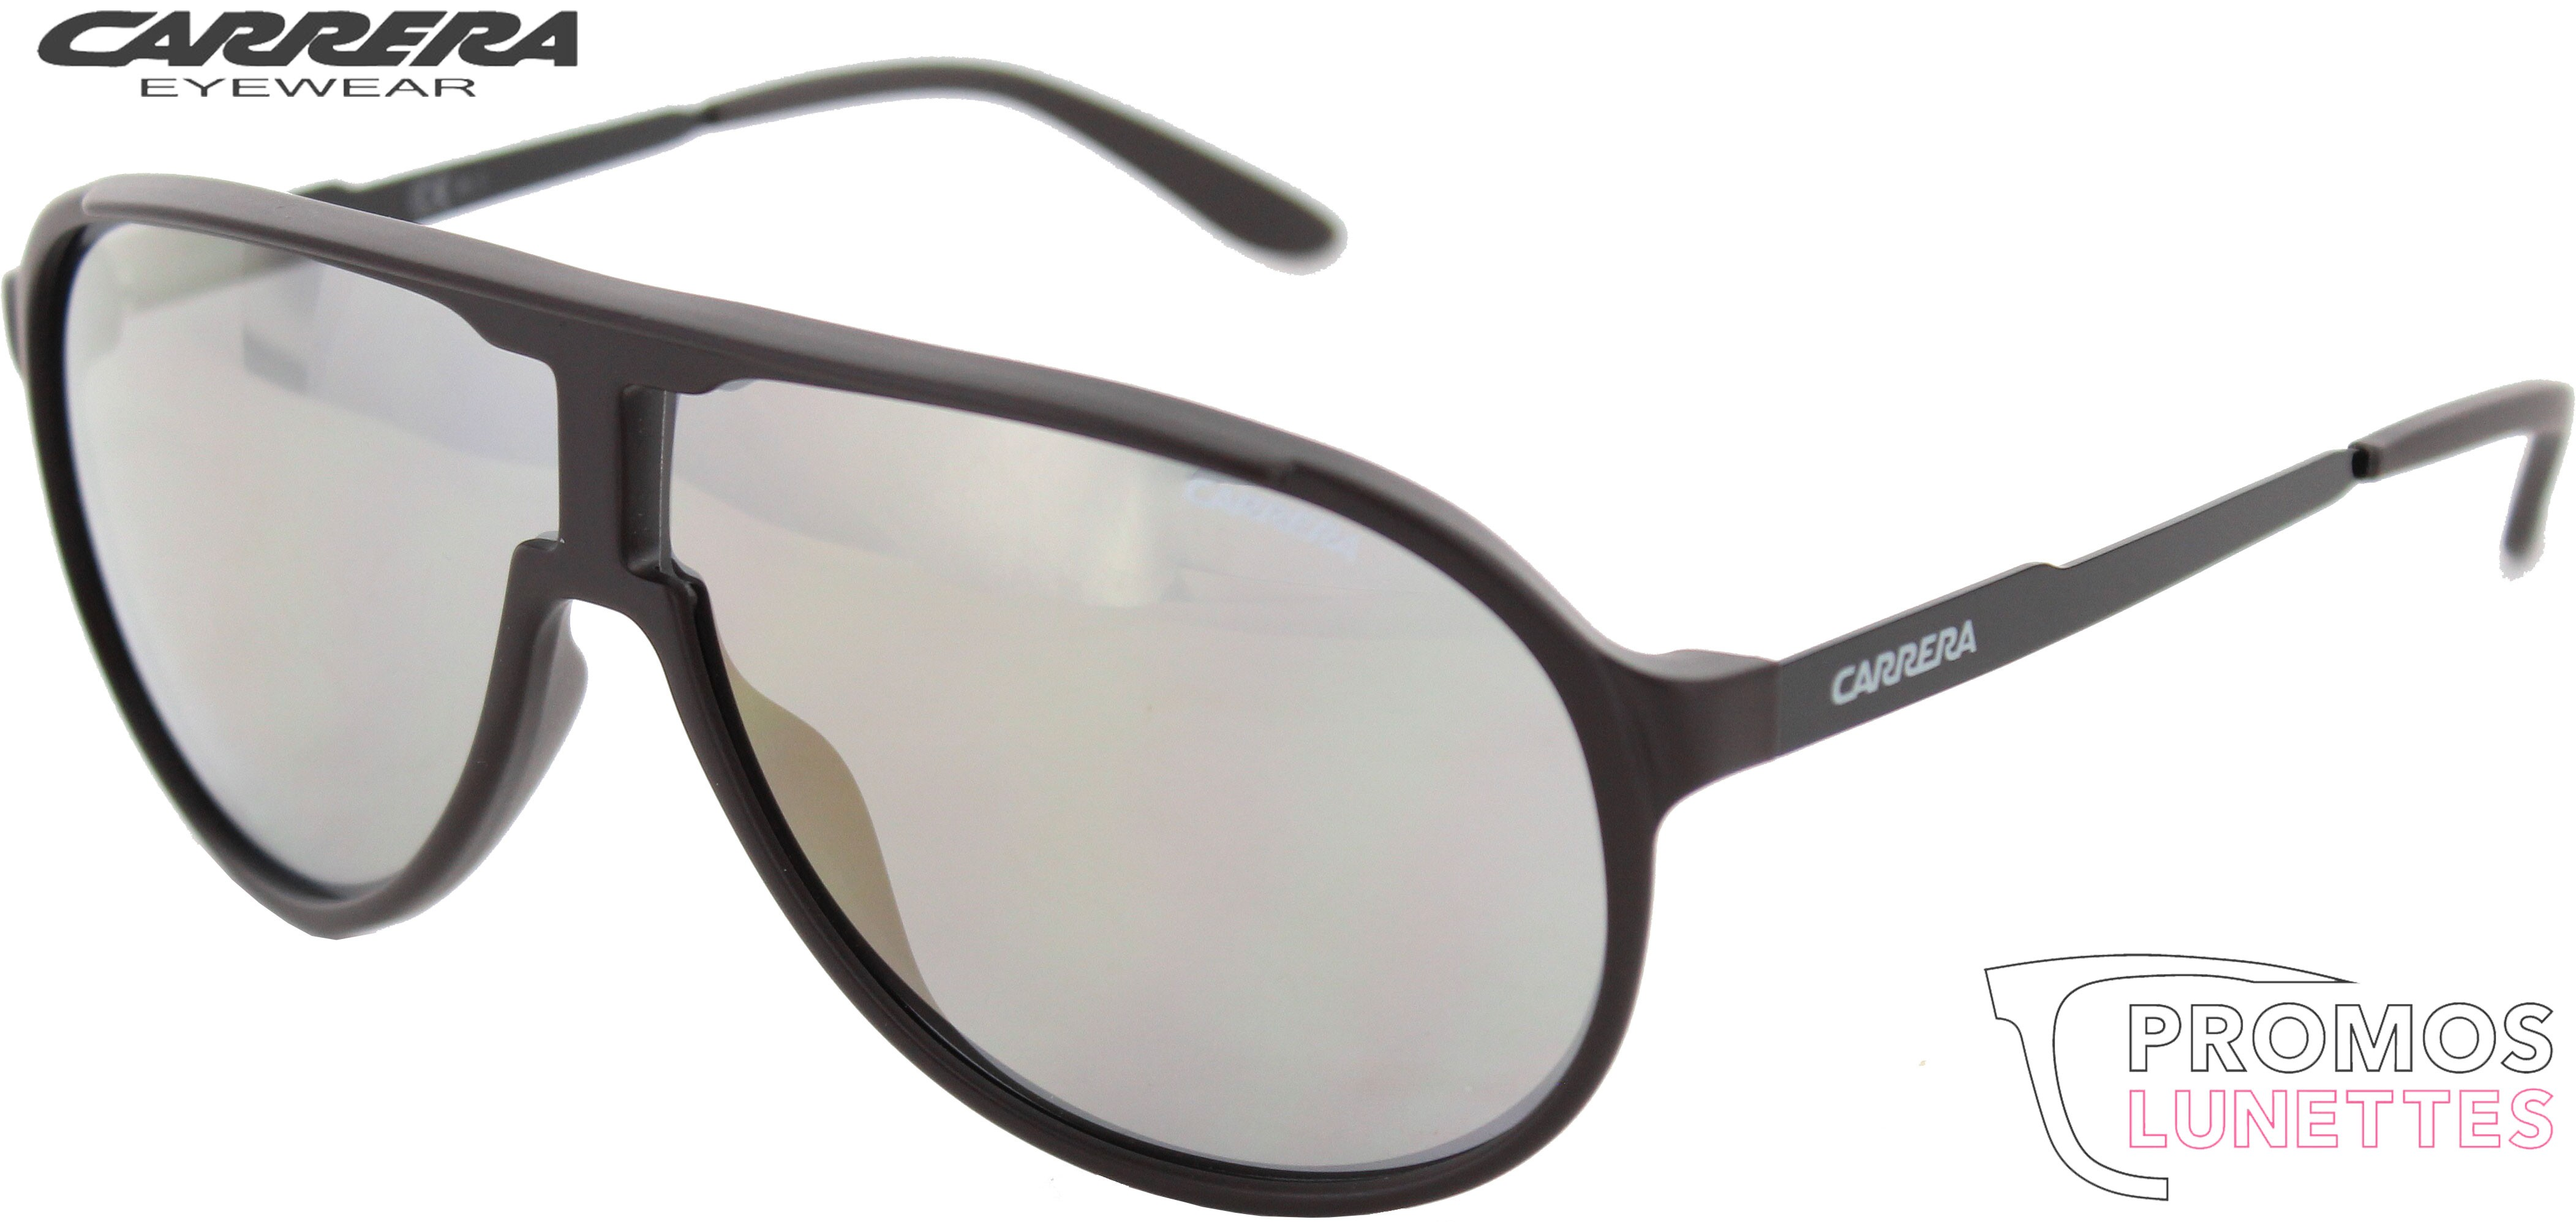 cd974404b7 Lunette de soleil Carrera new champion 8H7 MV - PromosLunettes